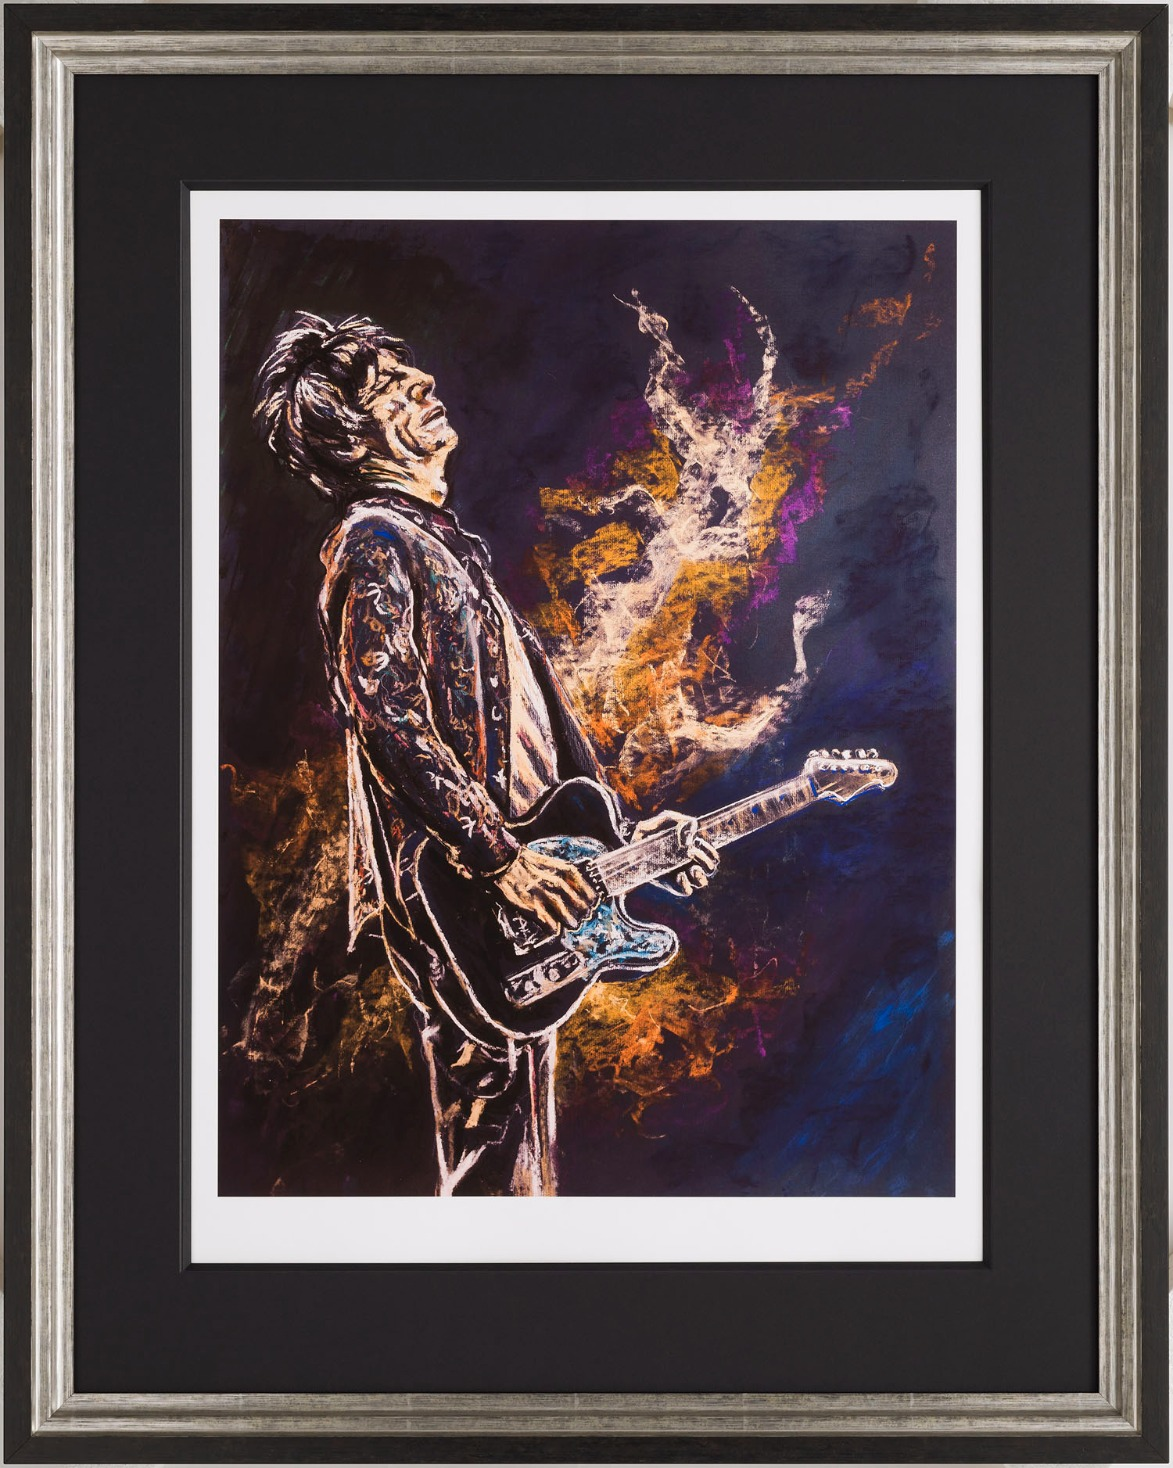 Self Portrait II (Charlie & Ronnie) by Ronnie Wood, Pop | Music | Book